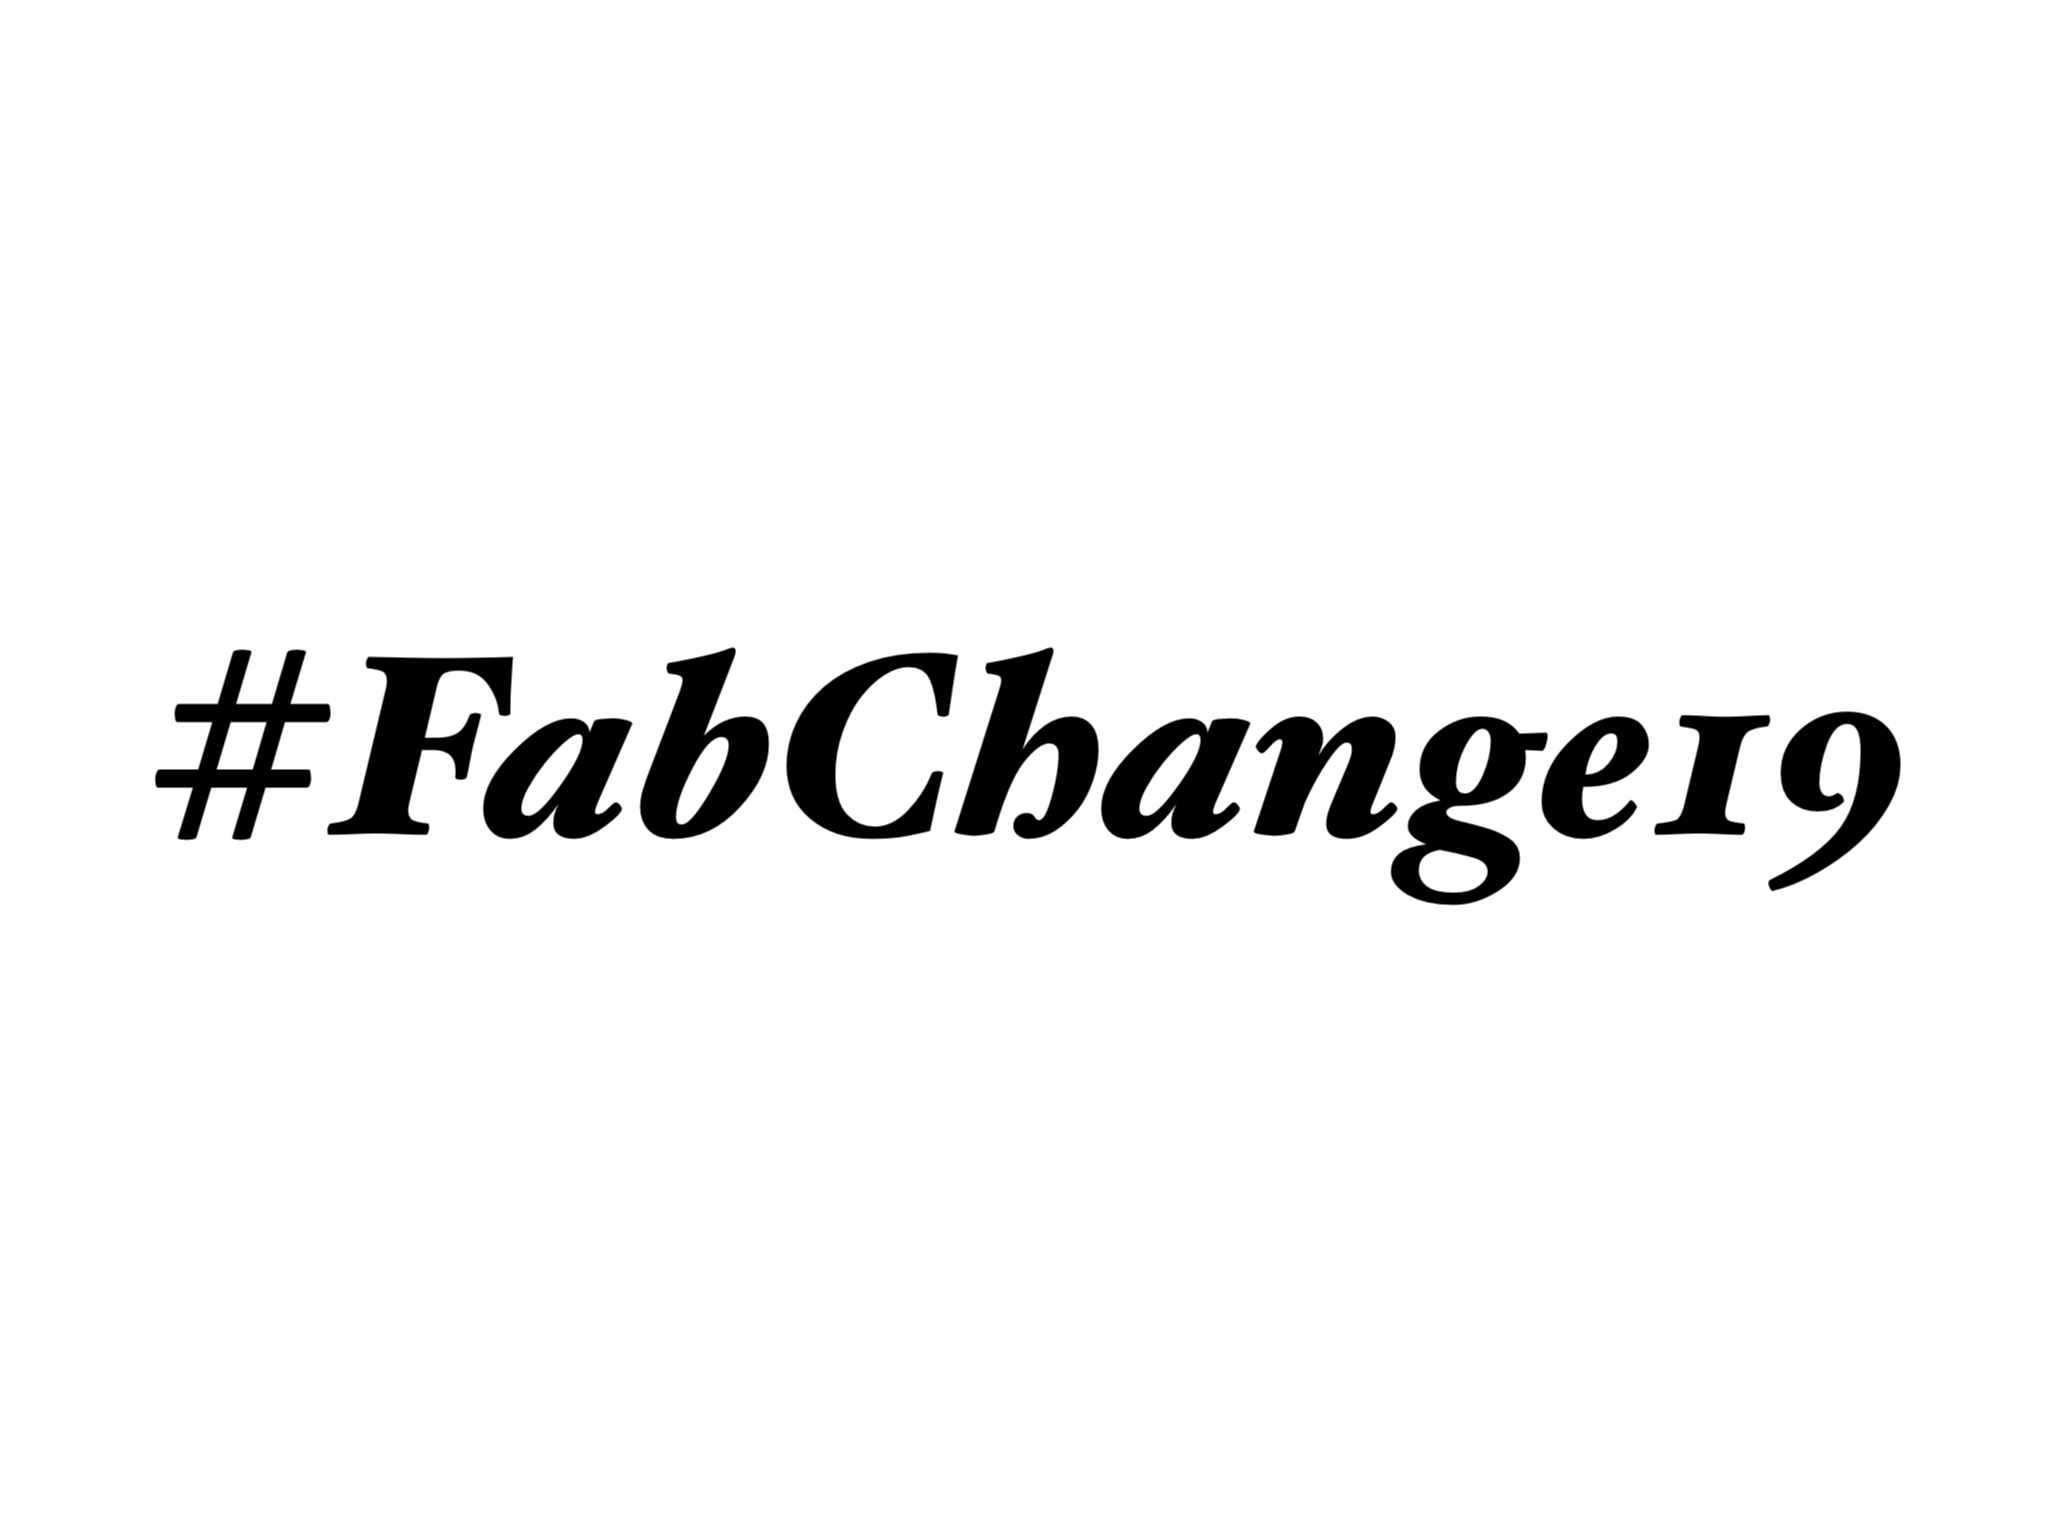 #FabChange19 - October 16th 2019 featured image